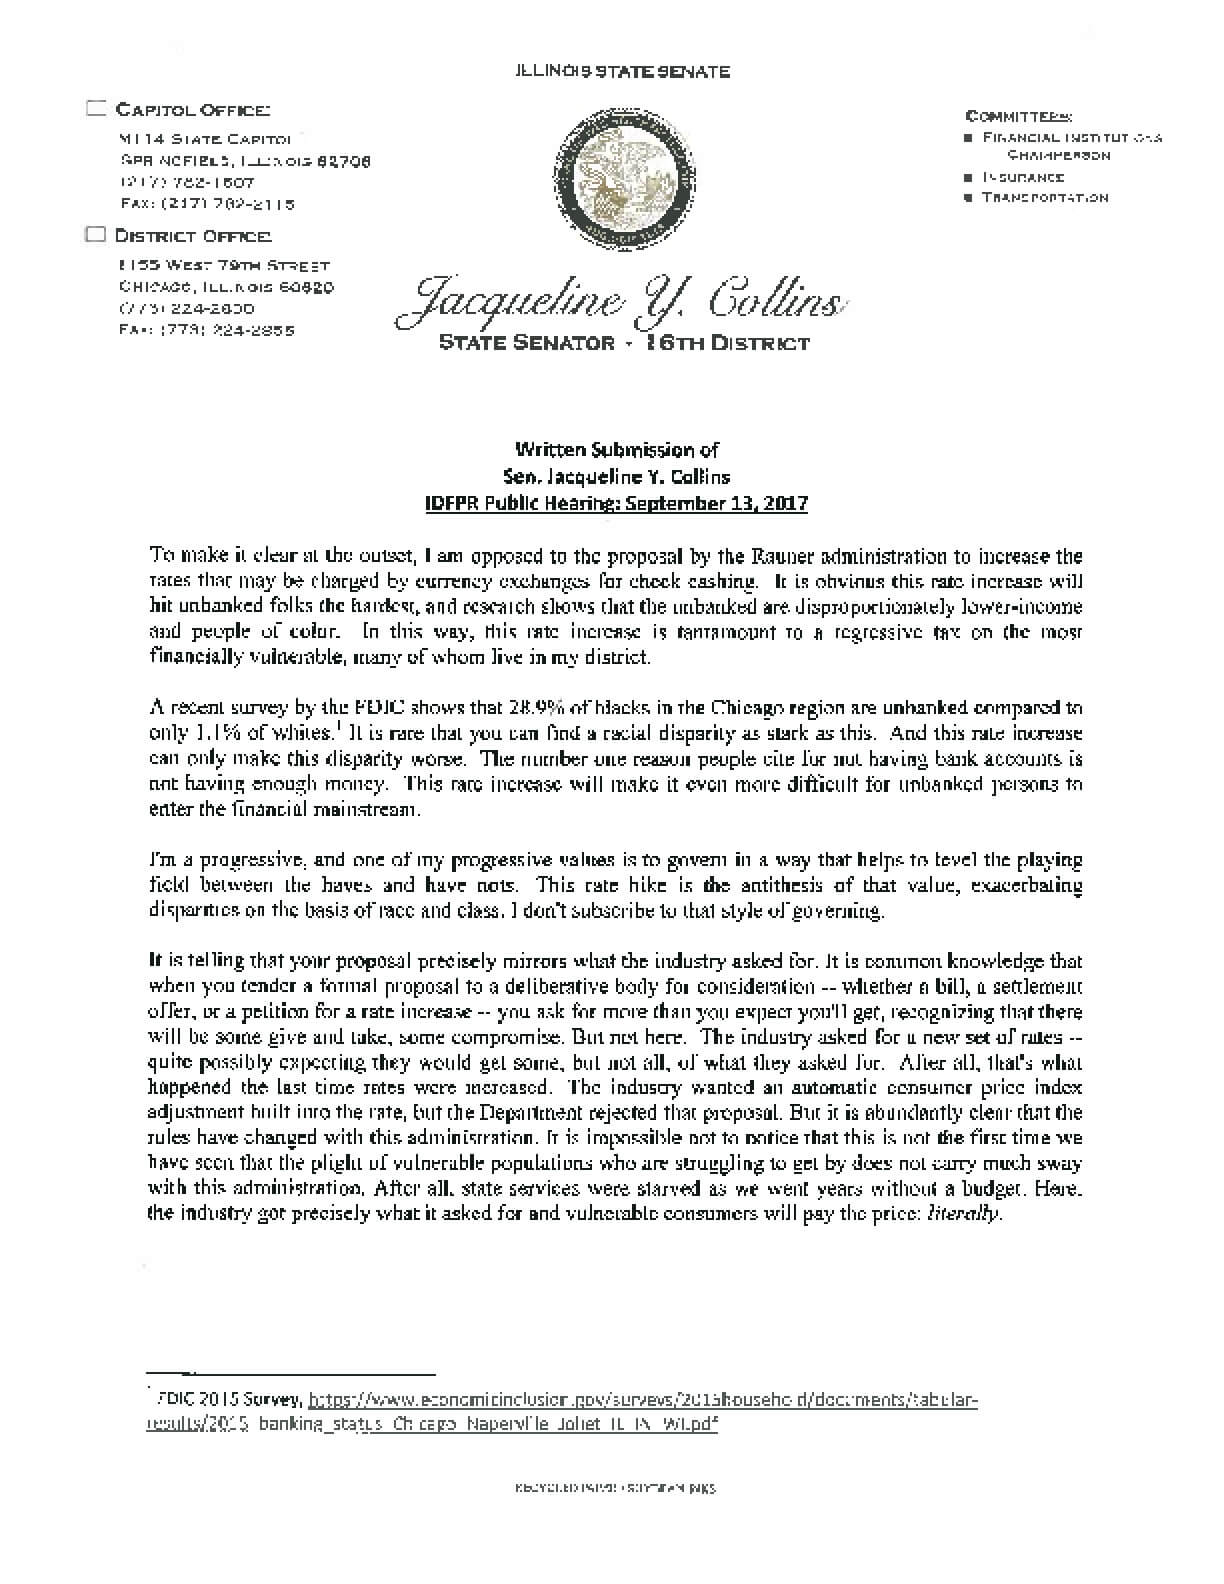 Testimony of Sen. Jacqueline Y. Collins to Illinois Department of Financial and Professional Regulation on Currency Exchange Rates